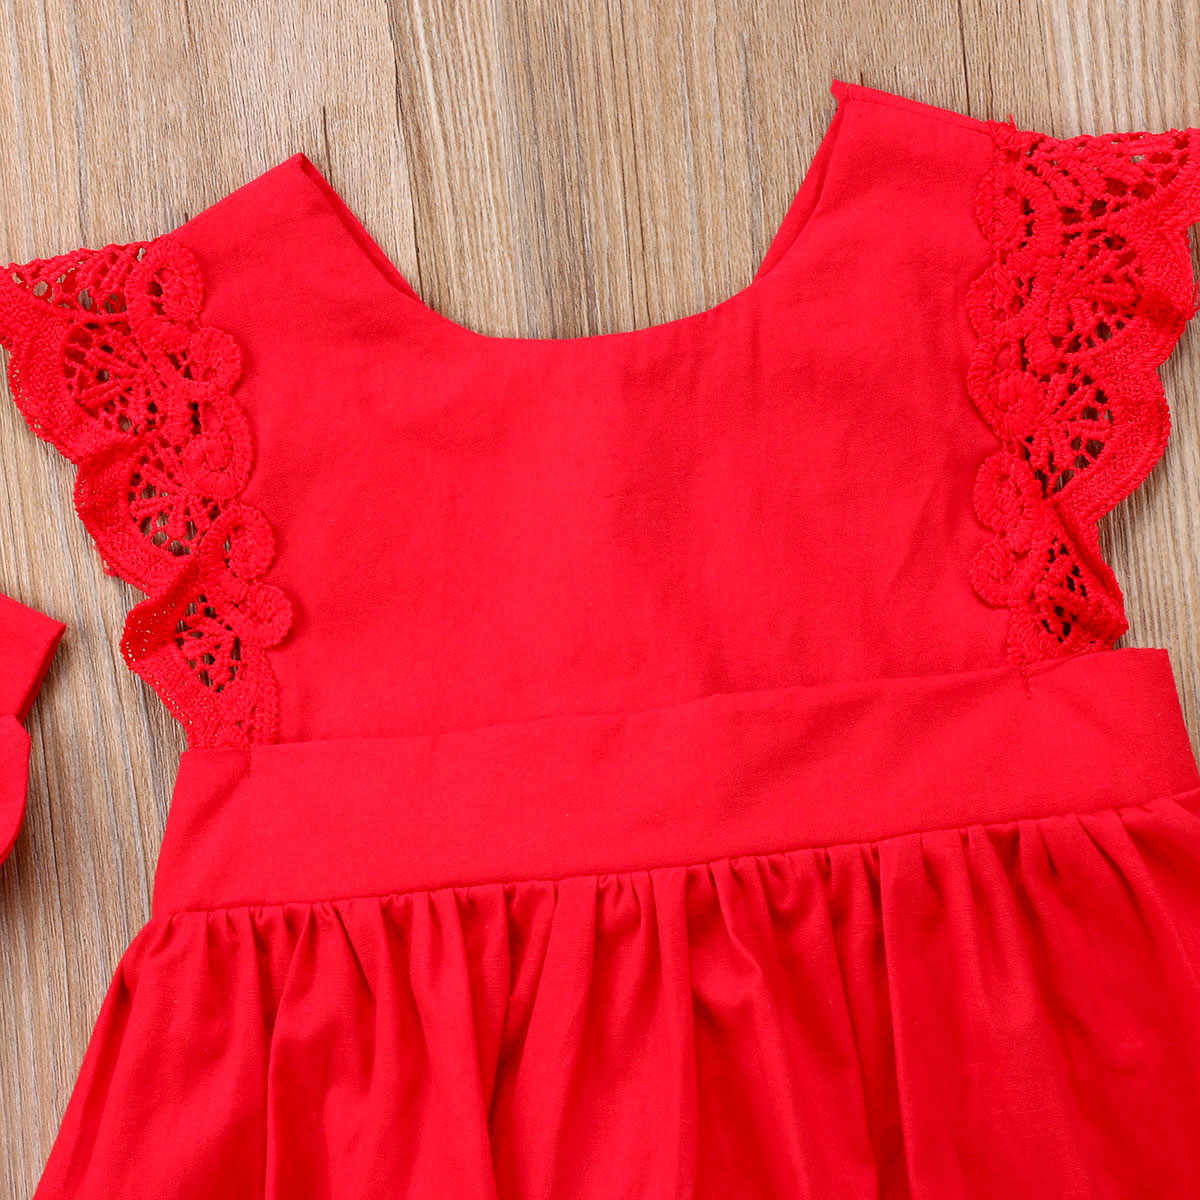 e141e3b5be1e ... Red Christmas Baby Girl Lace Princess Romper Dress Summer Backless  Flower Dress Jumpsuit Clothes Xmas Headband ...